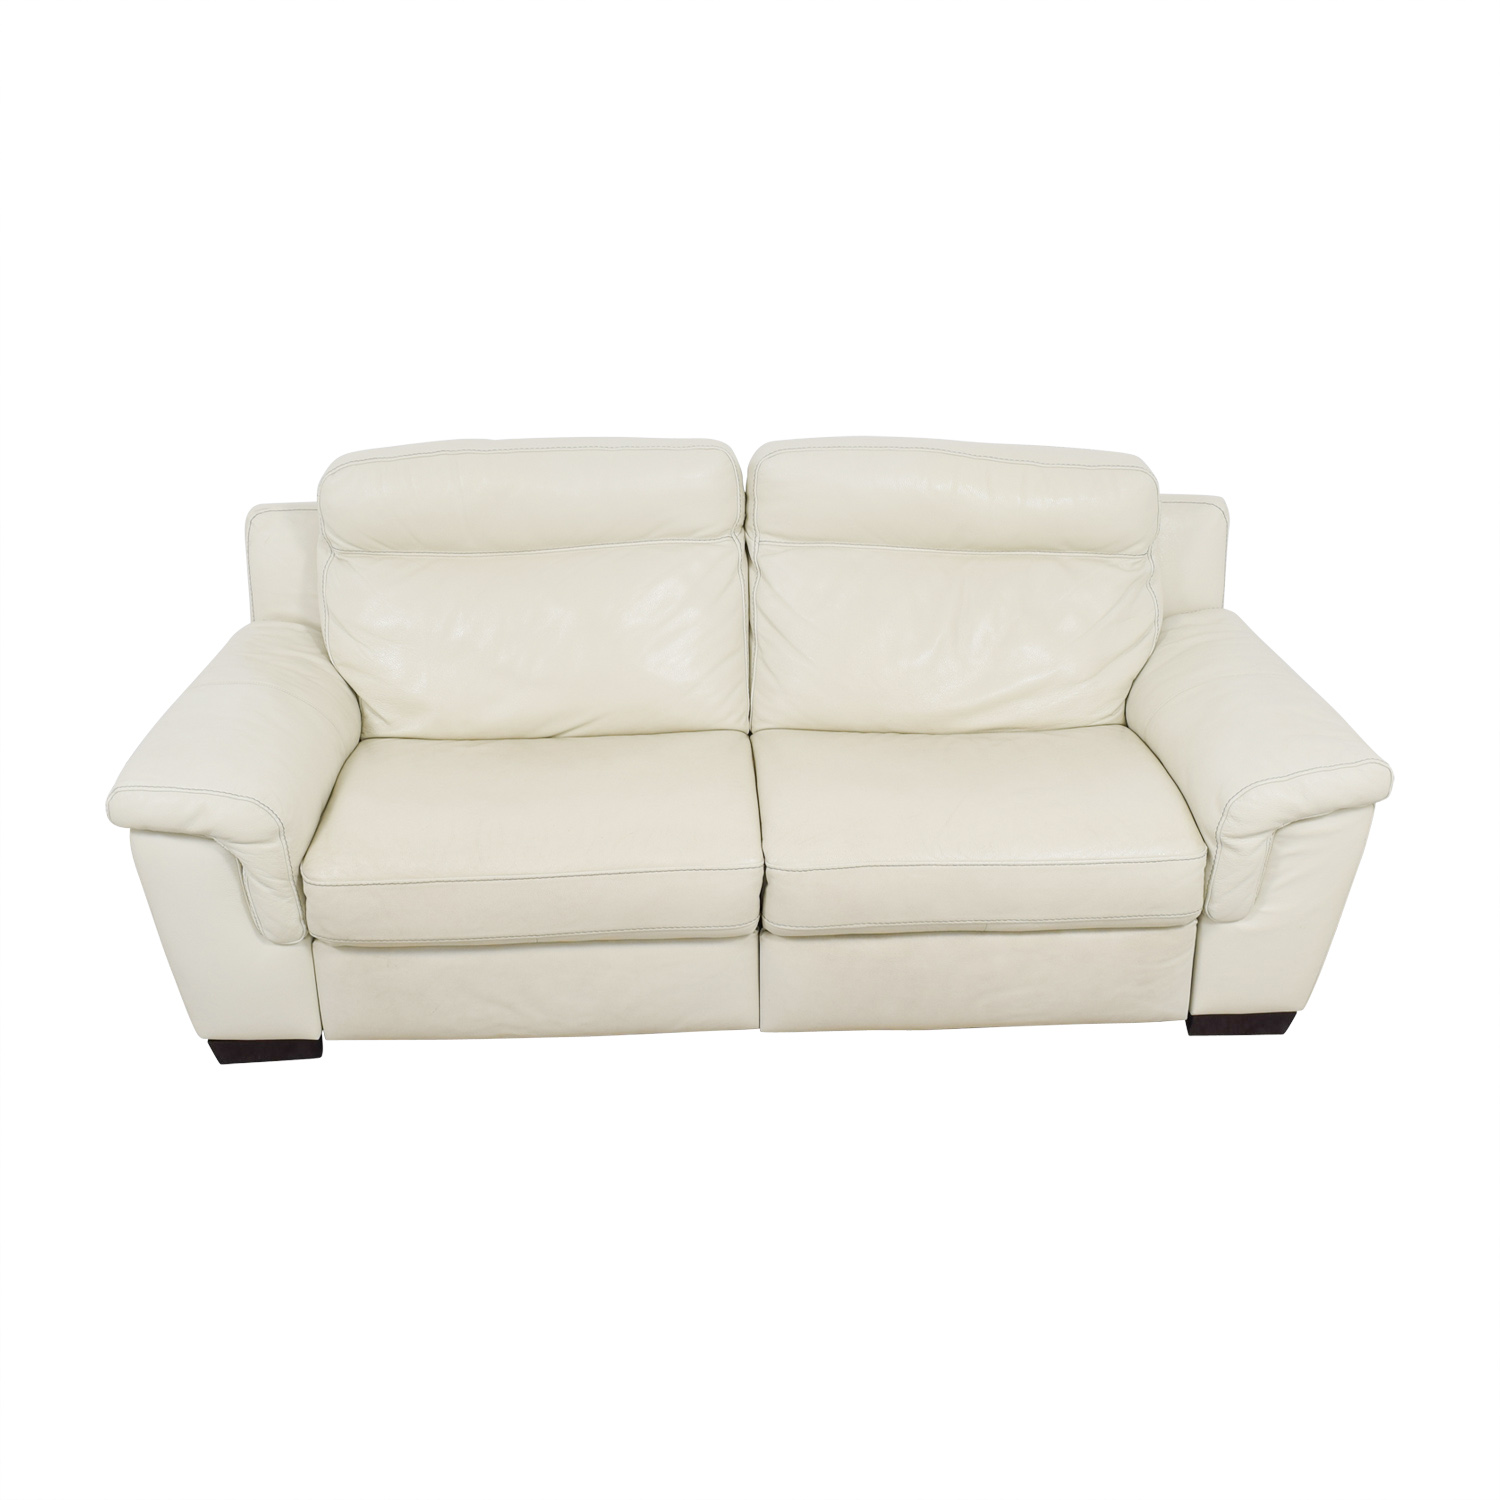 69 Off Macy S White Leather Recliner Sofa Chairs